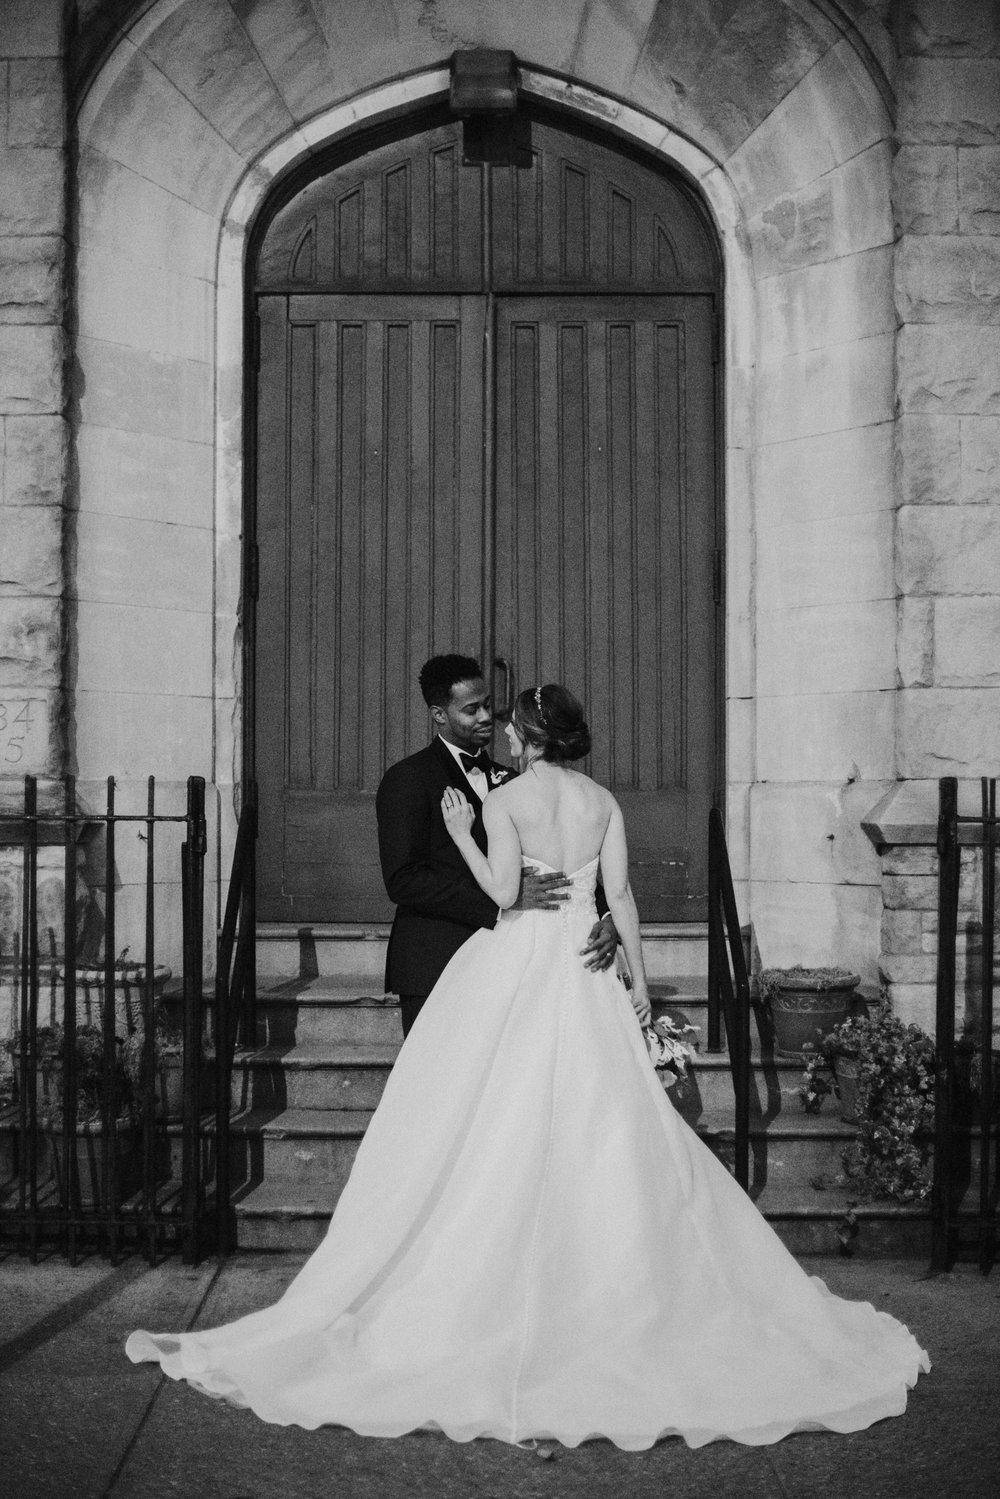 Caitlin&AndrewWeddingPreview-BW-3.jpg